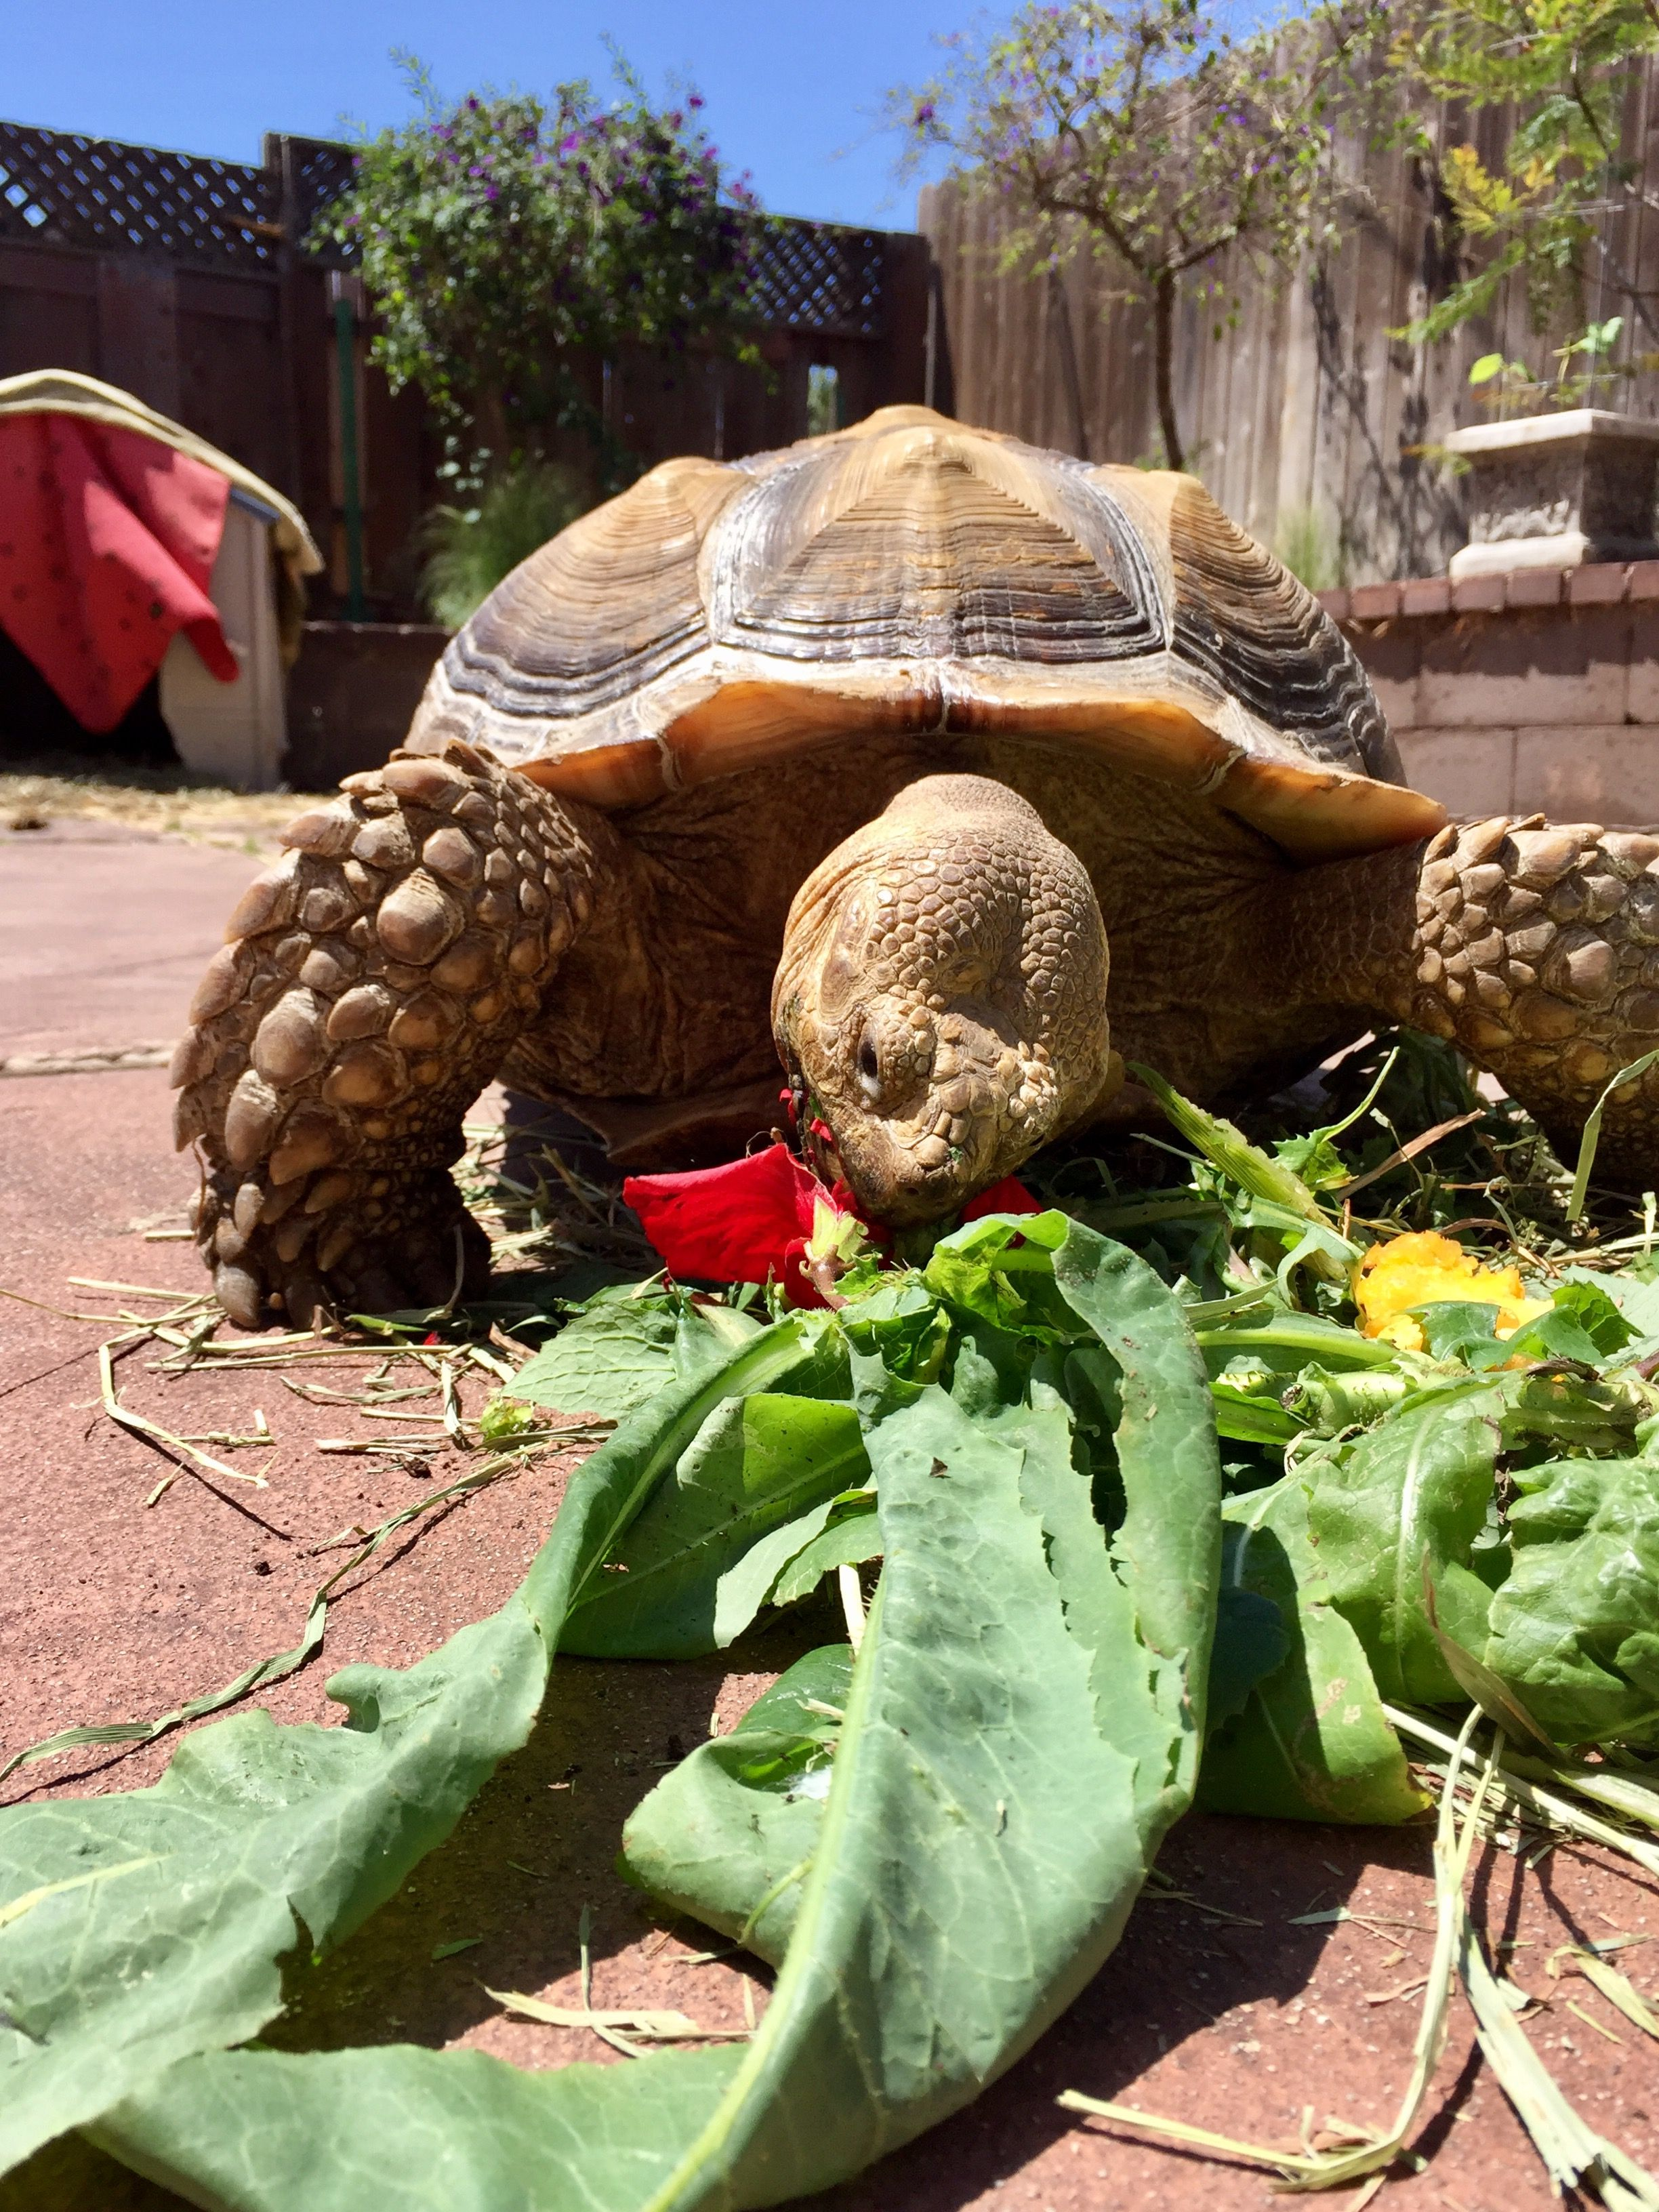 Enjoying His Lunch Romaine Dried Timothy Hay Dandelions Hibiscus